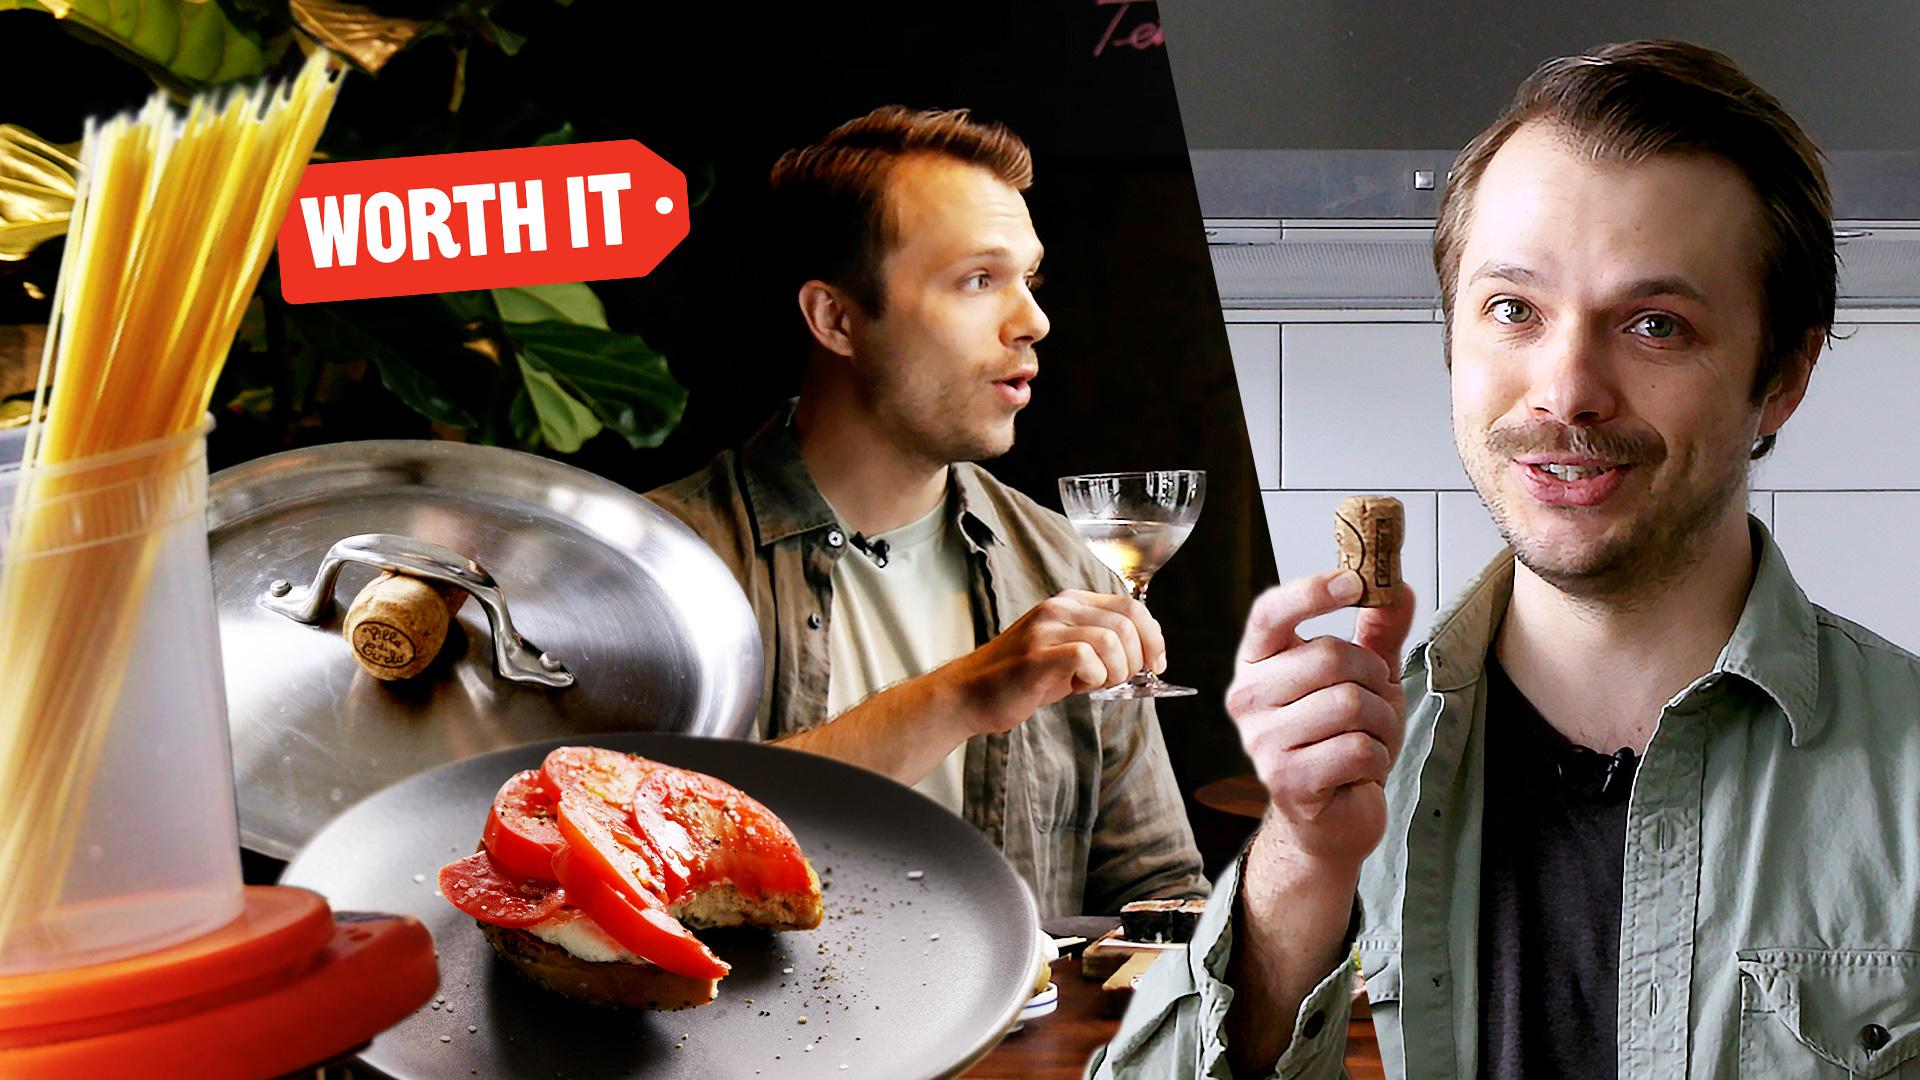 www.buzzfeed.com: 10 Kitchen Tips I Learned From Worth It